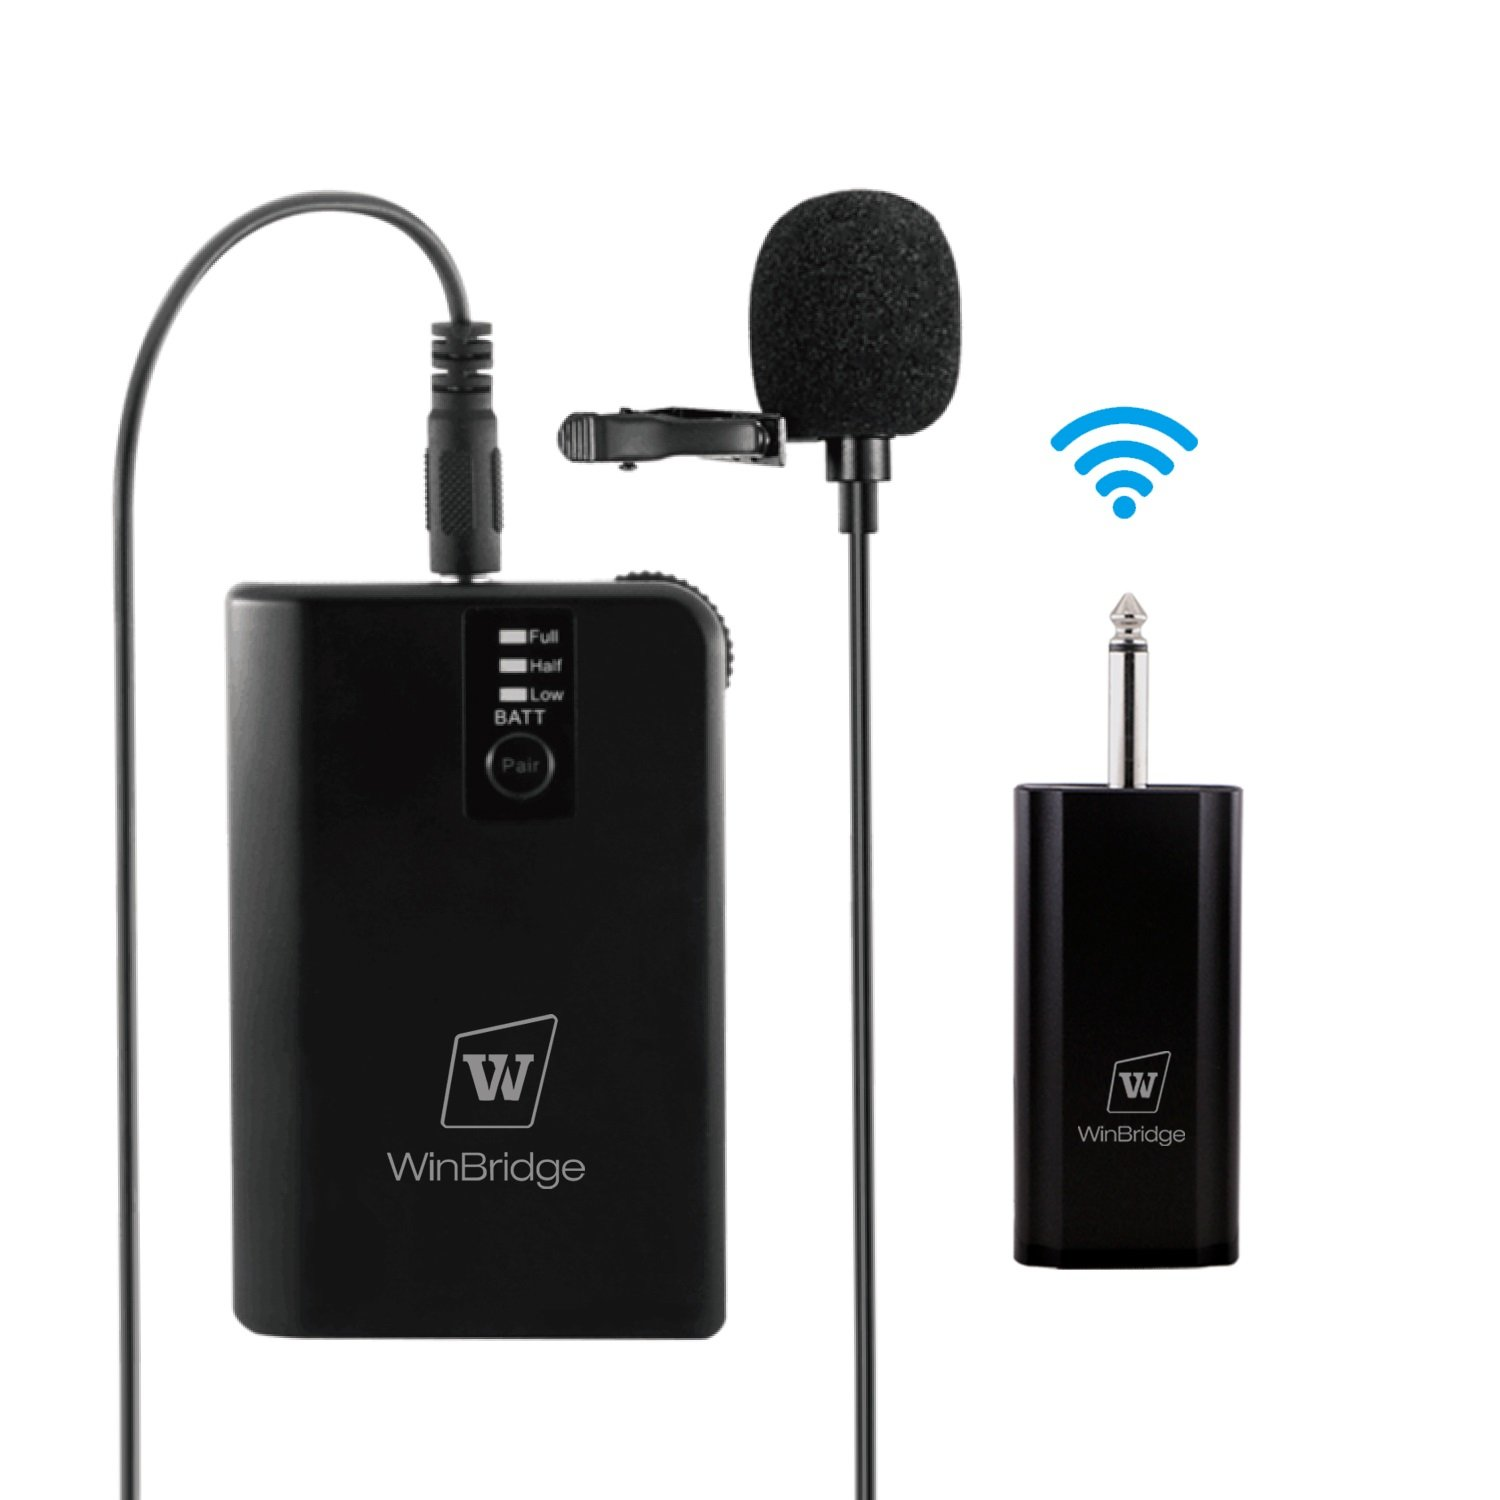 WinBridge WB028 Rechargeable UHF Wireless Lavalier Microphones with easy Clip On System with Bodypack Transmitter Receiver 1/4 Inch Output Perfect for DSLR Camera